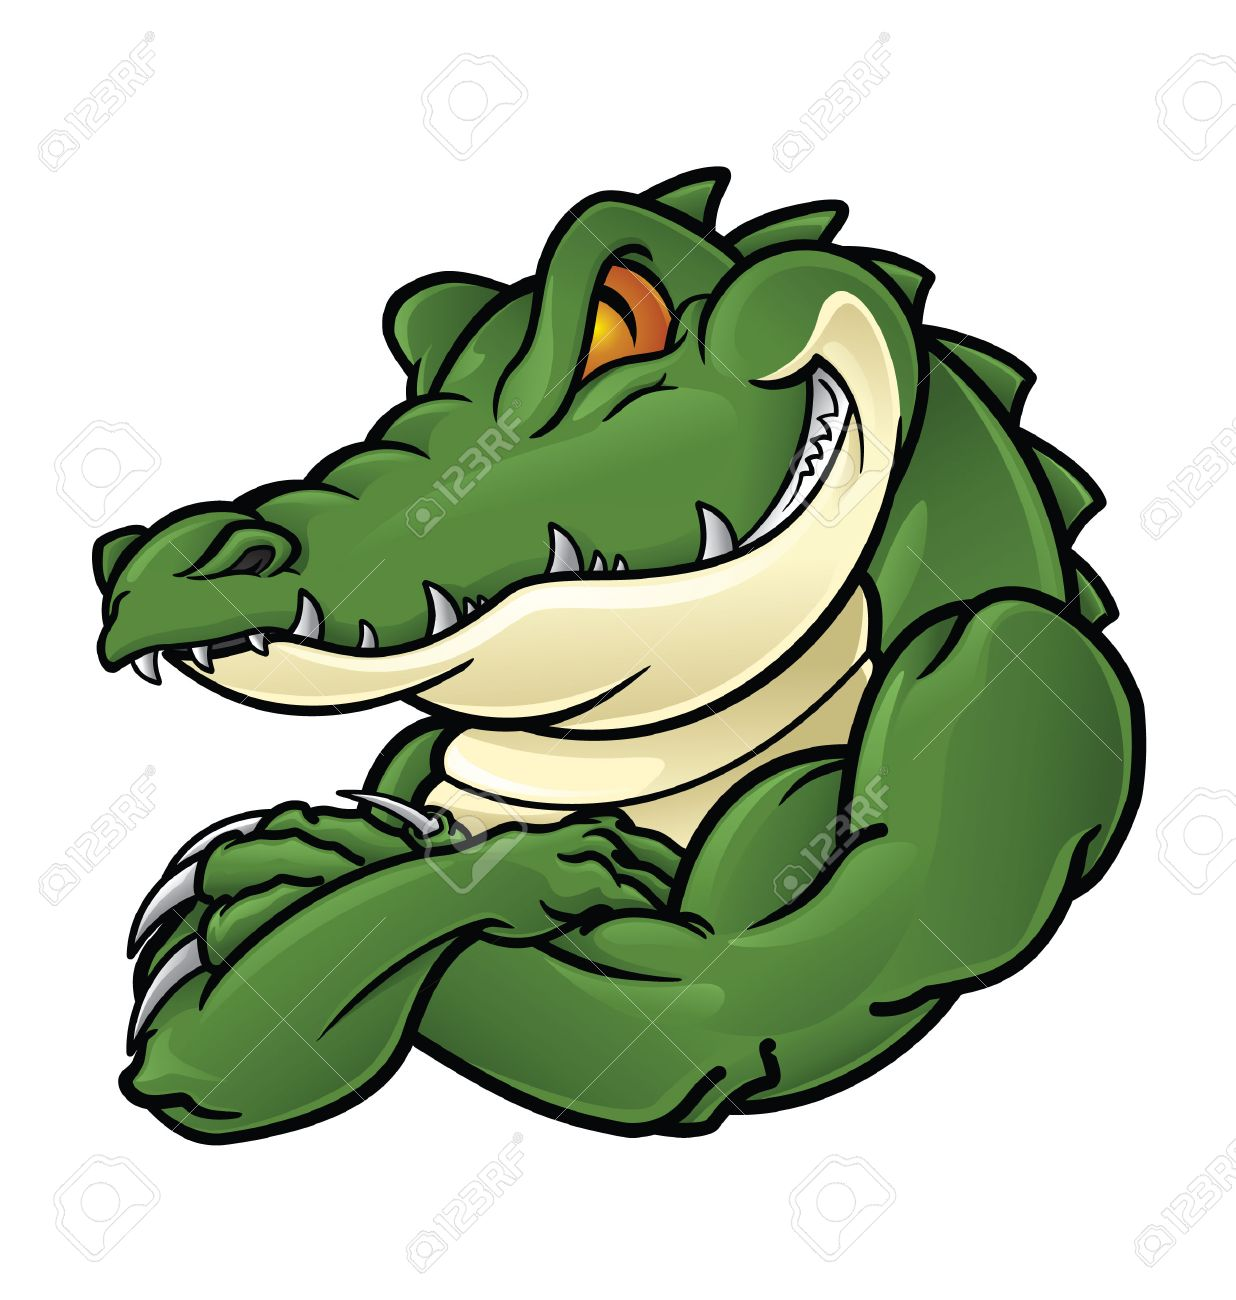 644 Cartoon Gator Stock Illustrations, Cliparts And Royalty Free ...